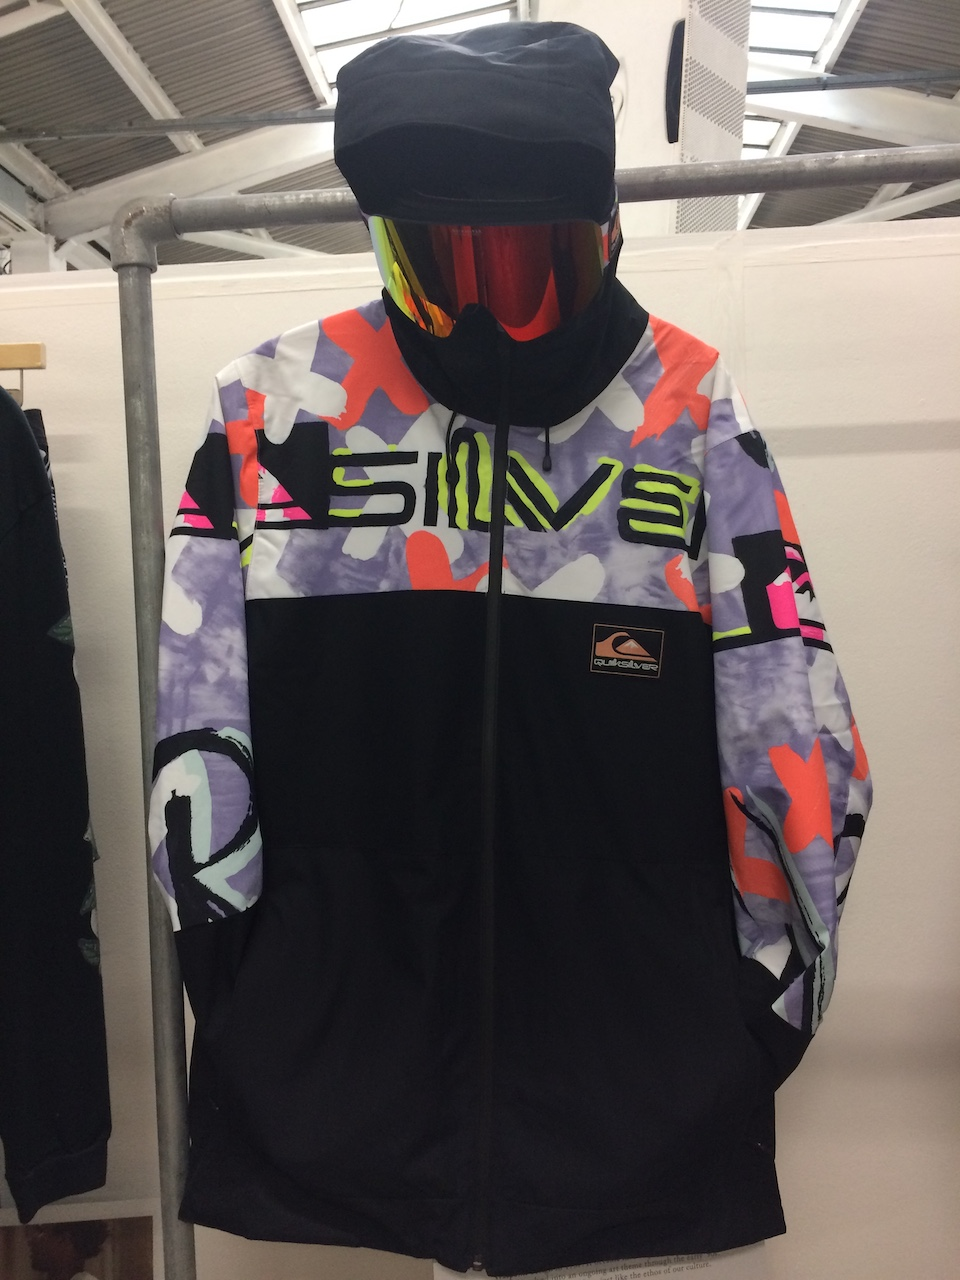 6b1c95df1 Quiksilver's Sycamore technical snow jacket part of the 50th ...